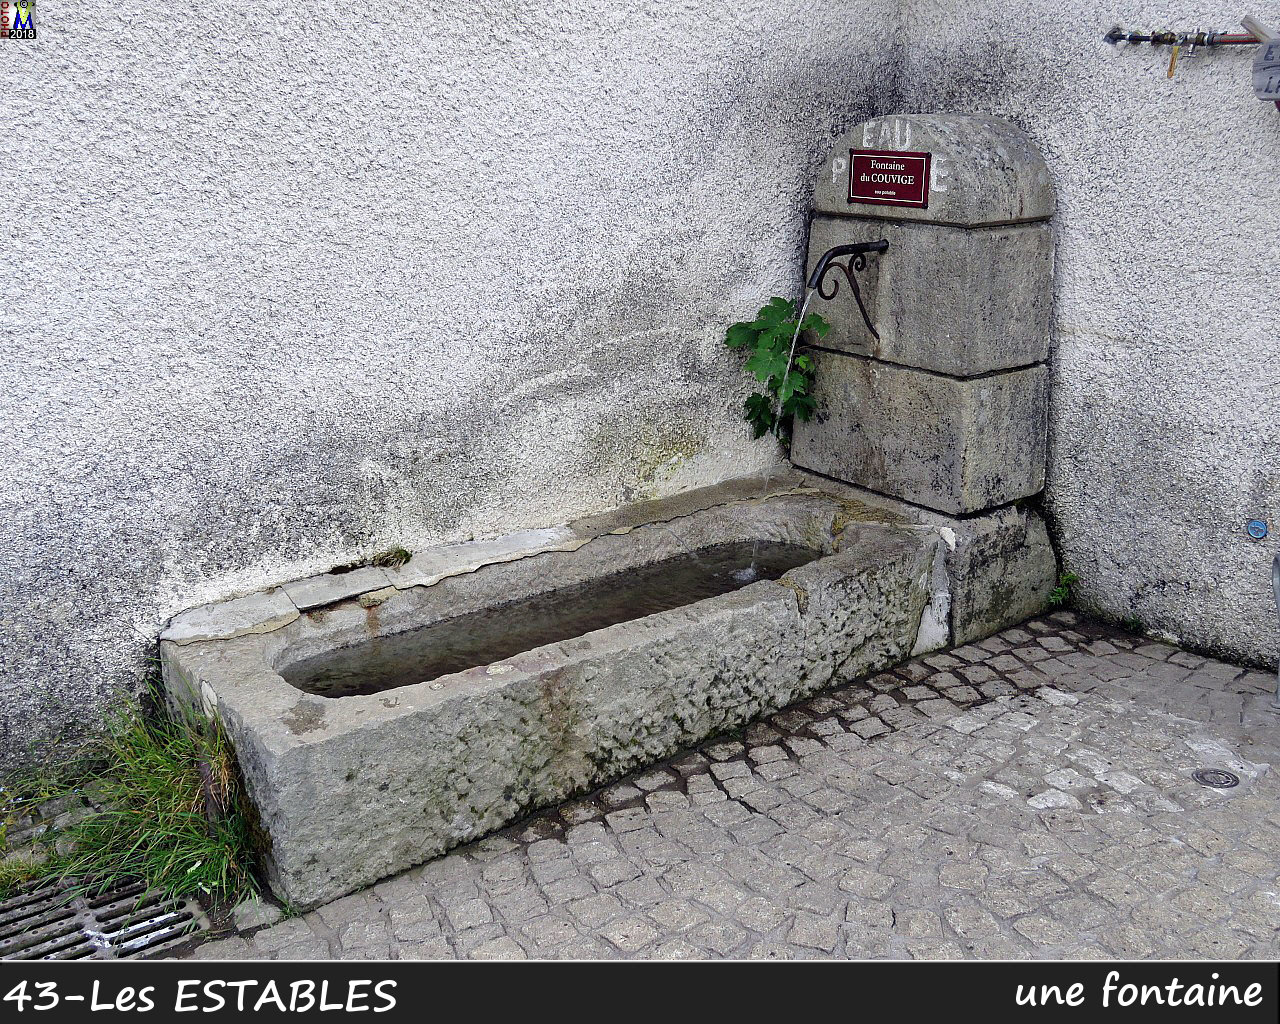 43LesESTABLES_fontaine_100.jpg